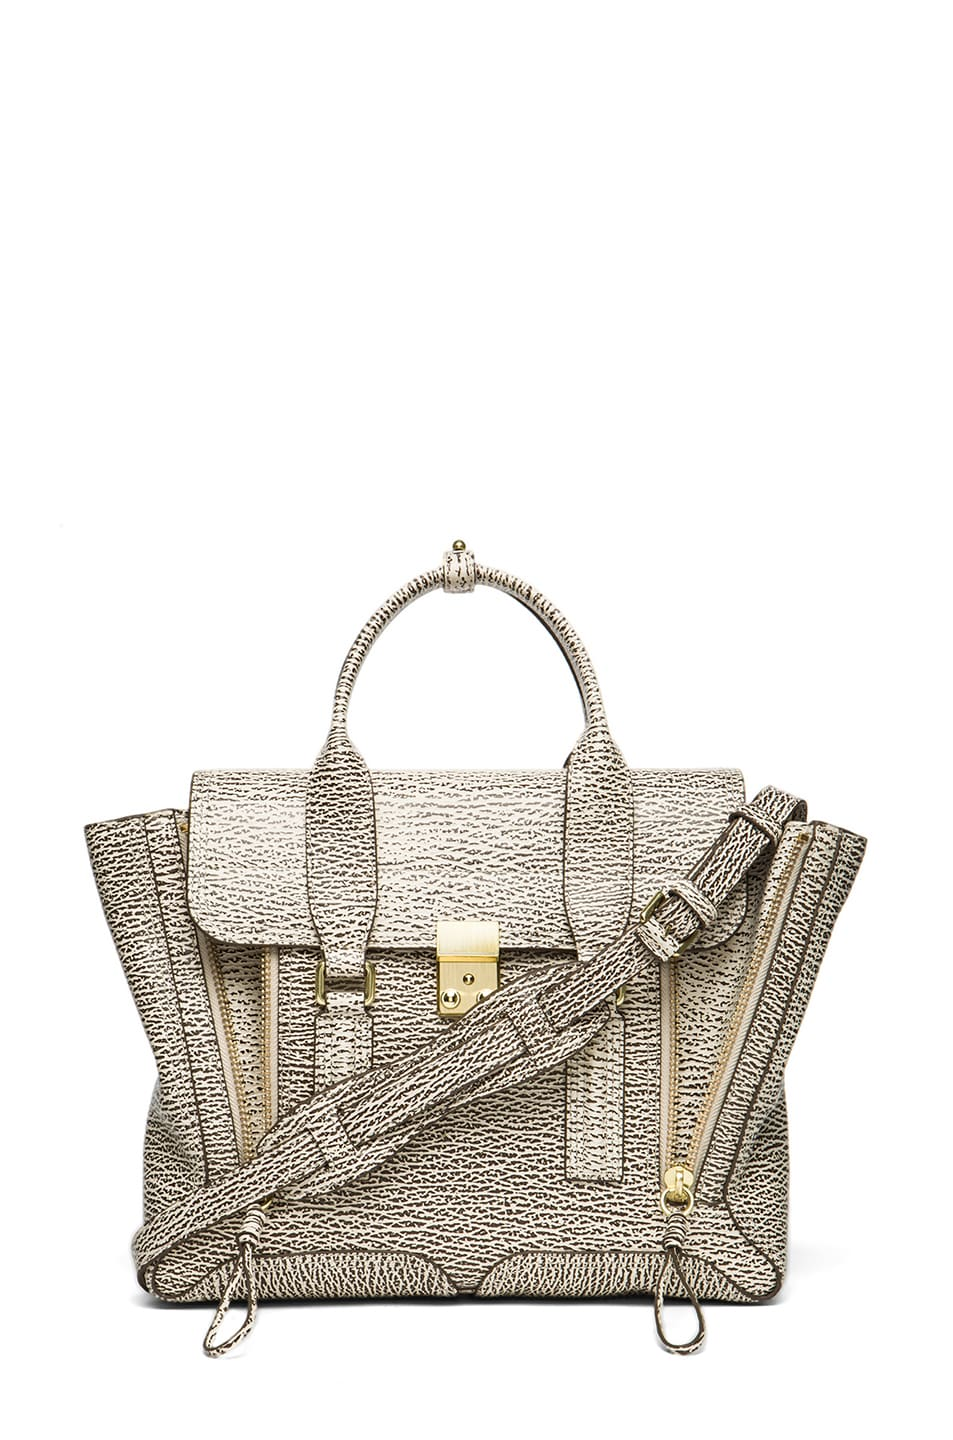 Image 1 of 3.1 phillip lim Medium Pashli Trapeze in Antique White & Military